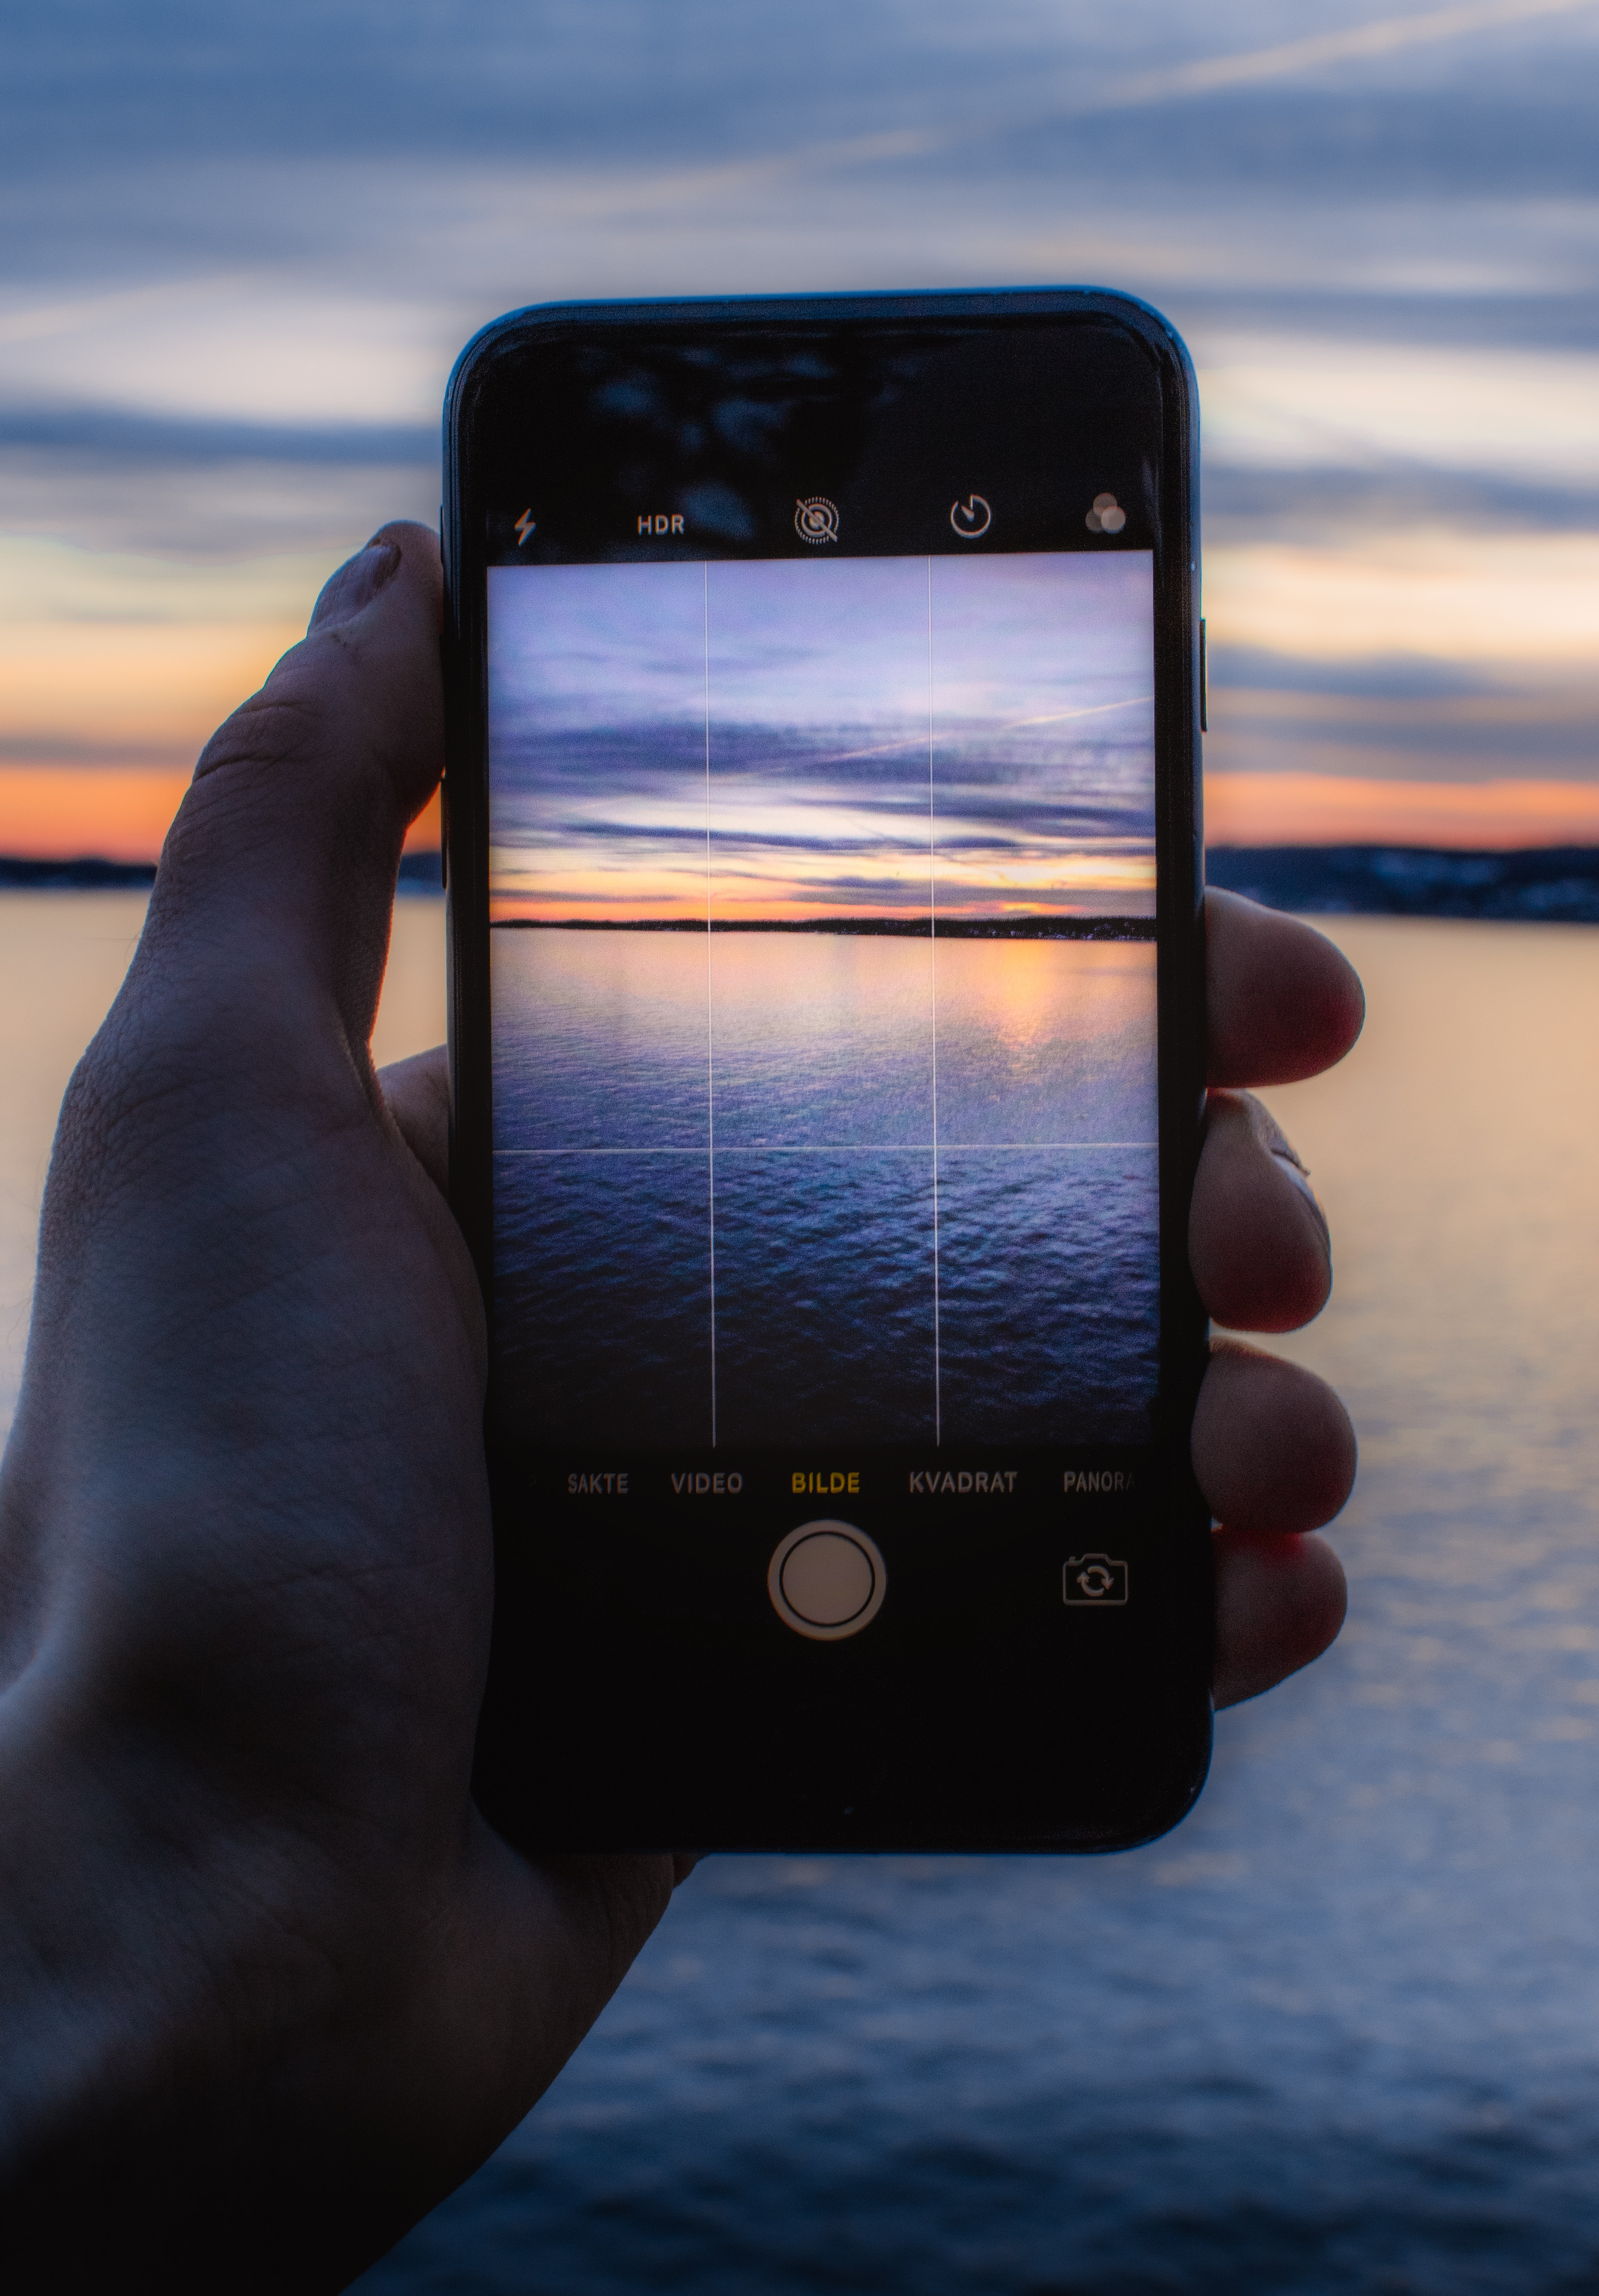 Person Holding Post-2014 Iphone Taking a Photo of Body of Water, Camera, Phone, Water, Views, HQ Photo